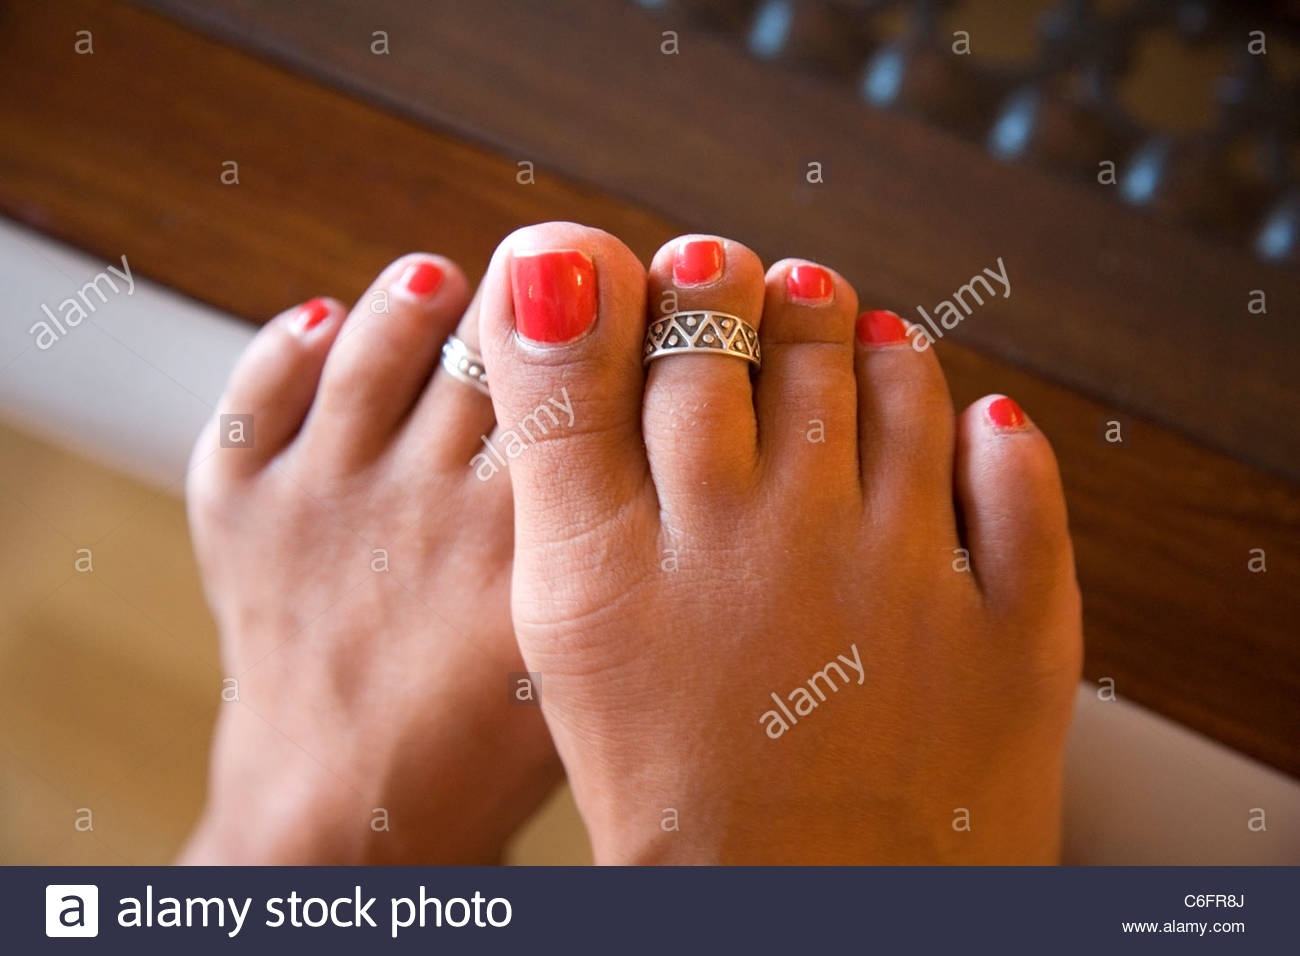 Toe Ring Stock Photos & Toe Ring Stock Images – Alamy Intended For Most Popular Custom Toe Rings (Gallery 3 of 15)